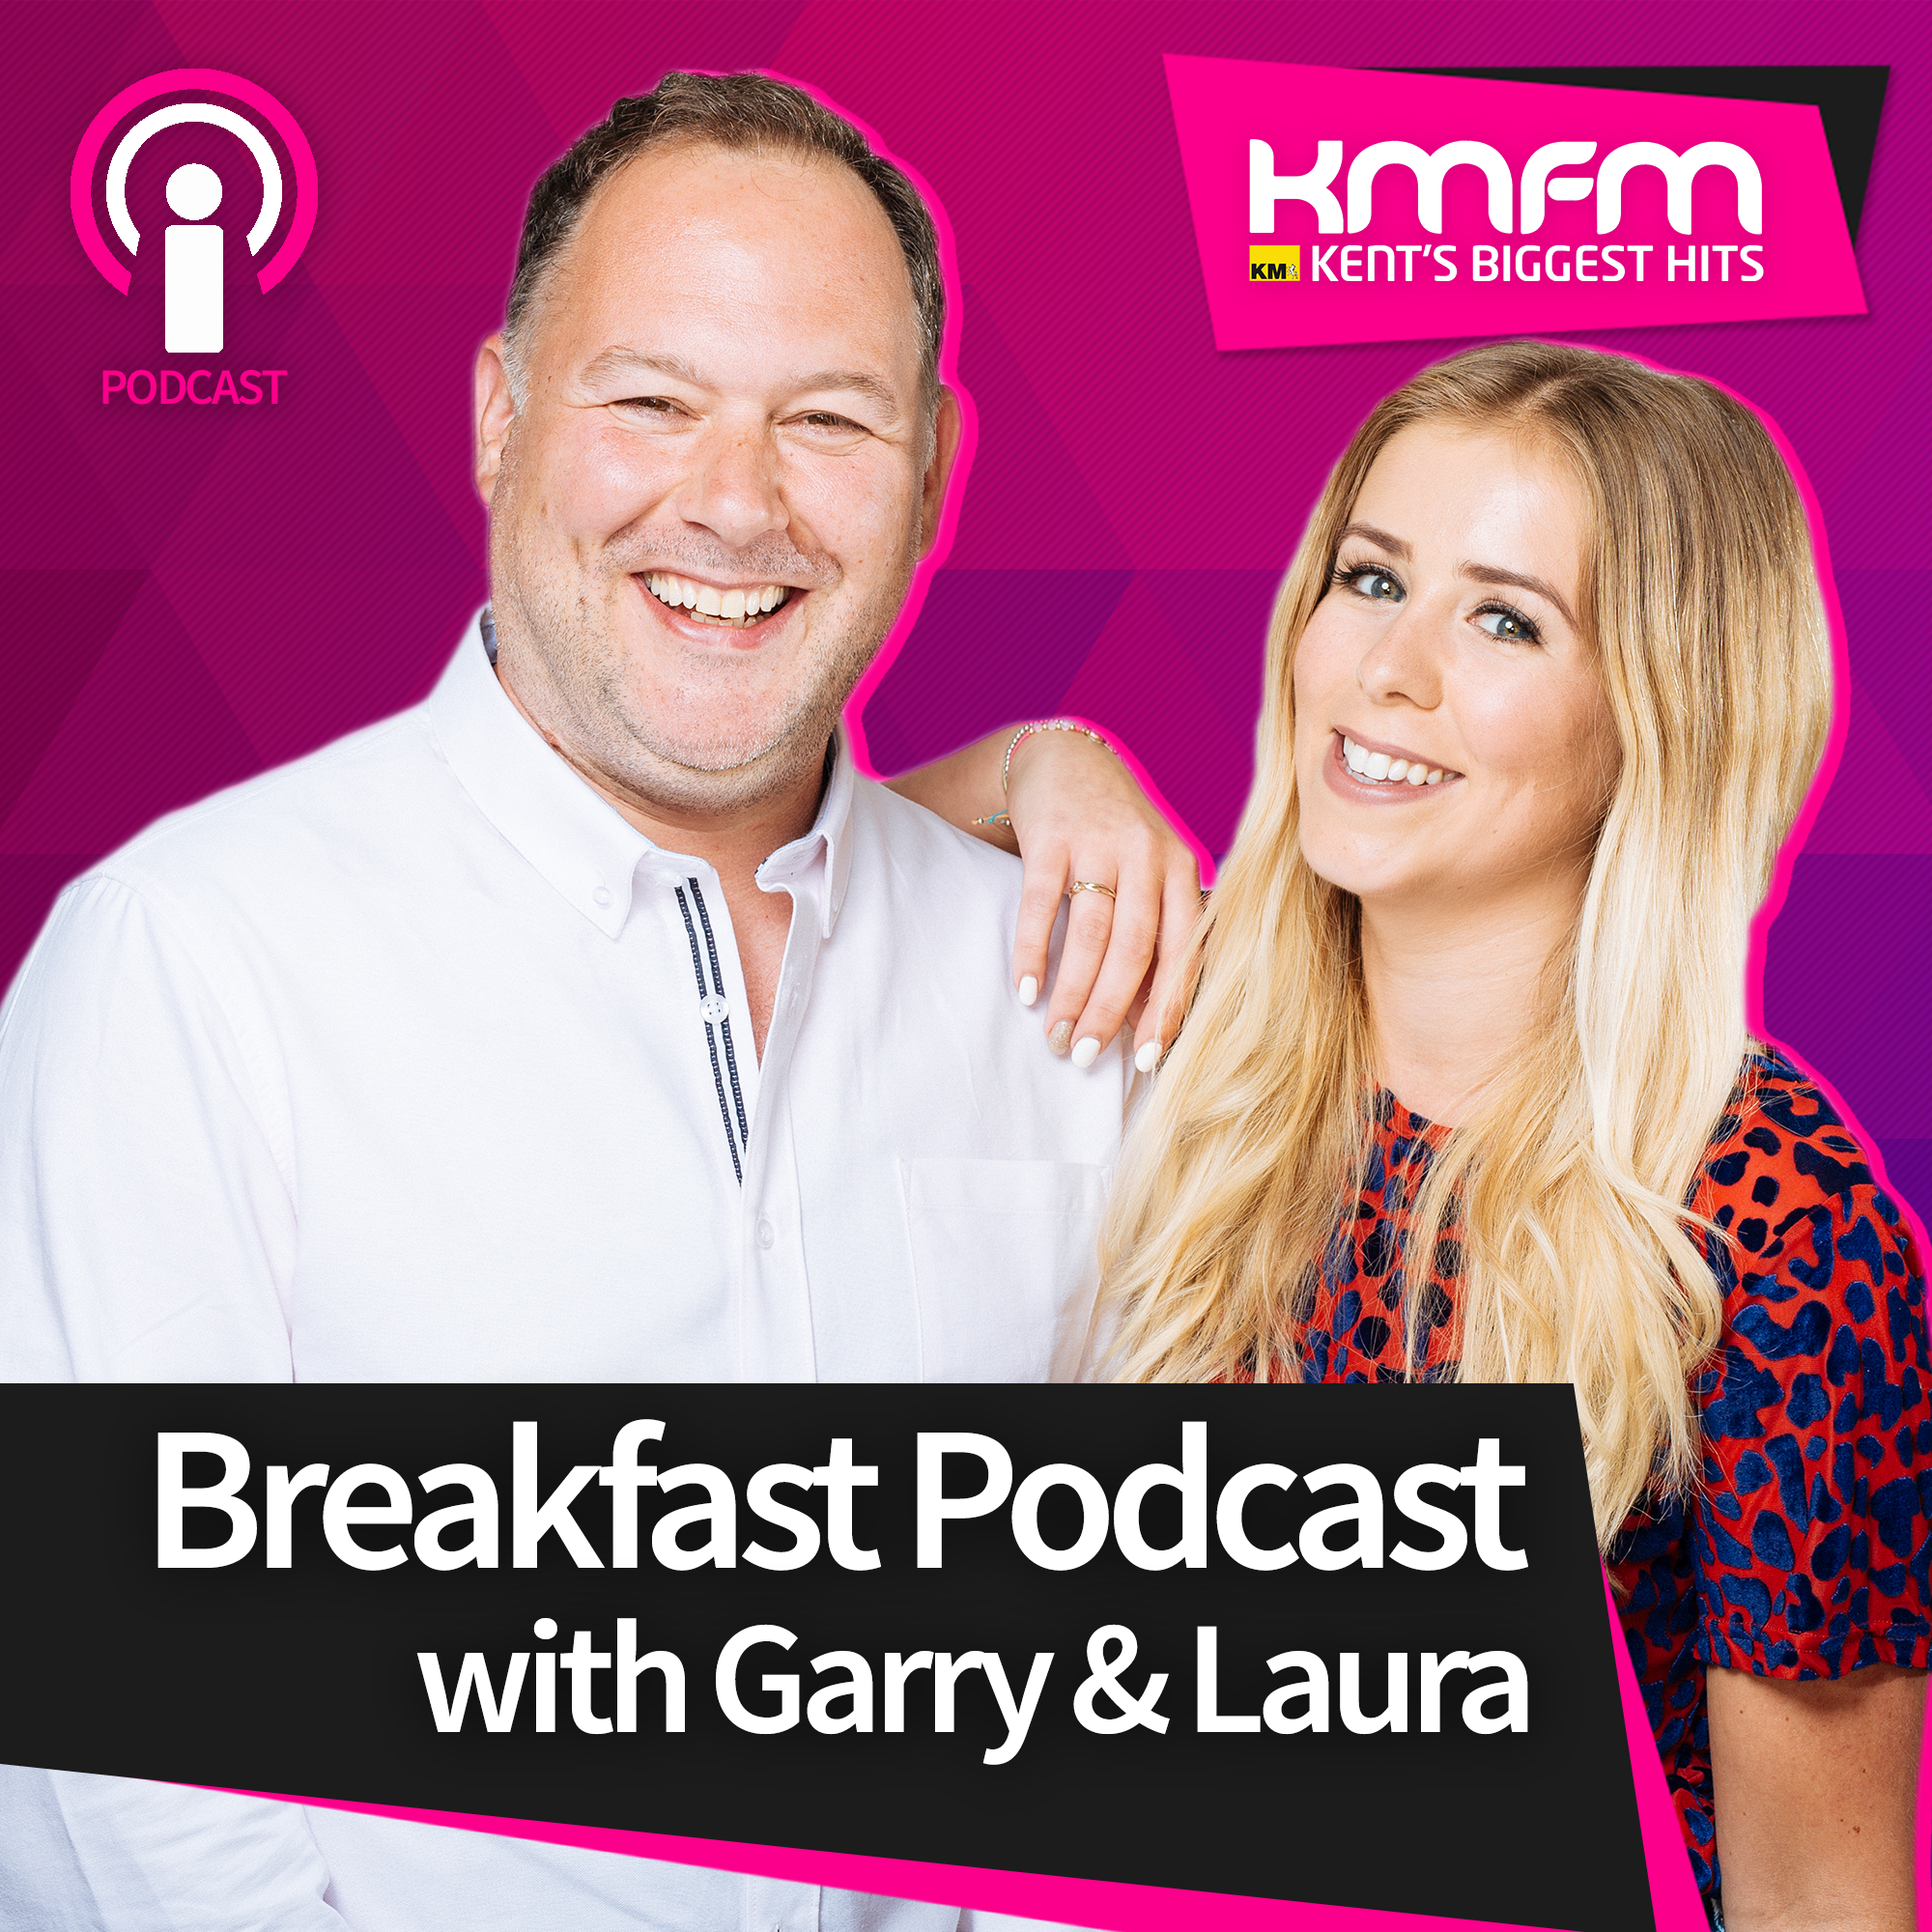 kmfm Breakfast Podcast with Garry and Laura